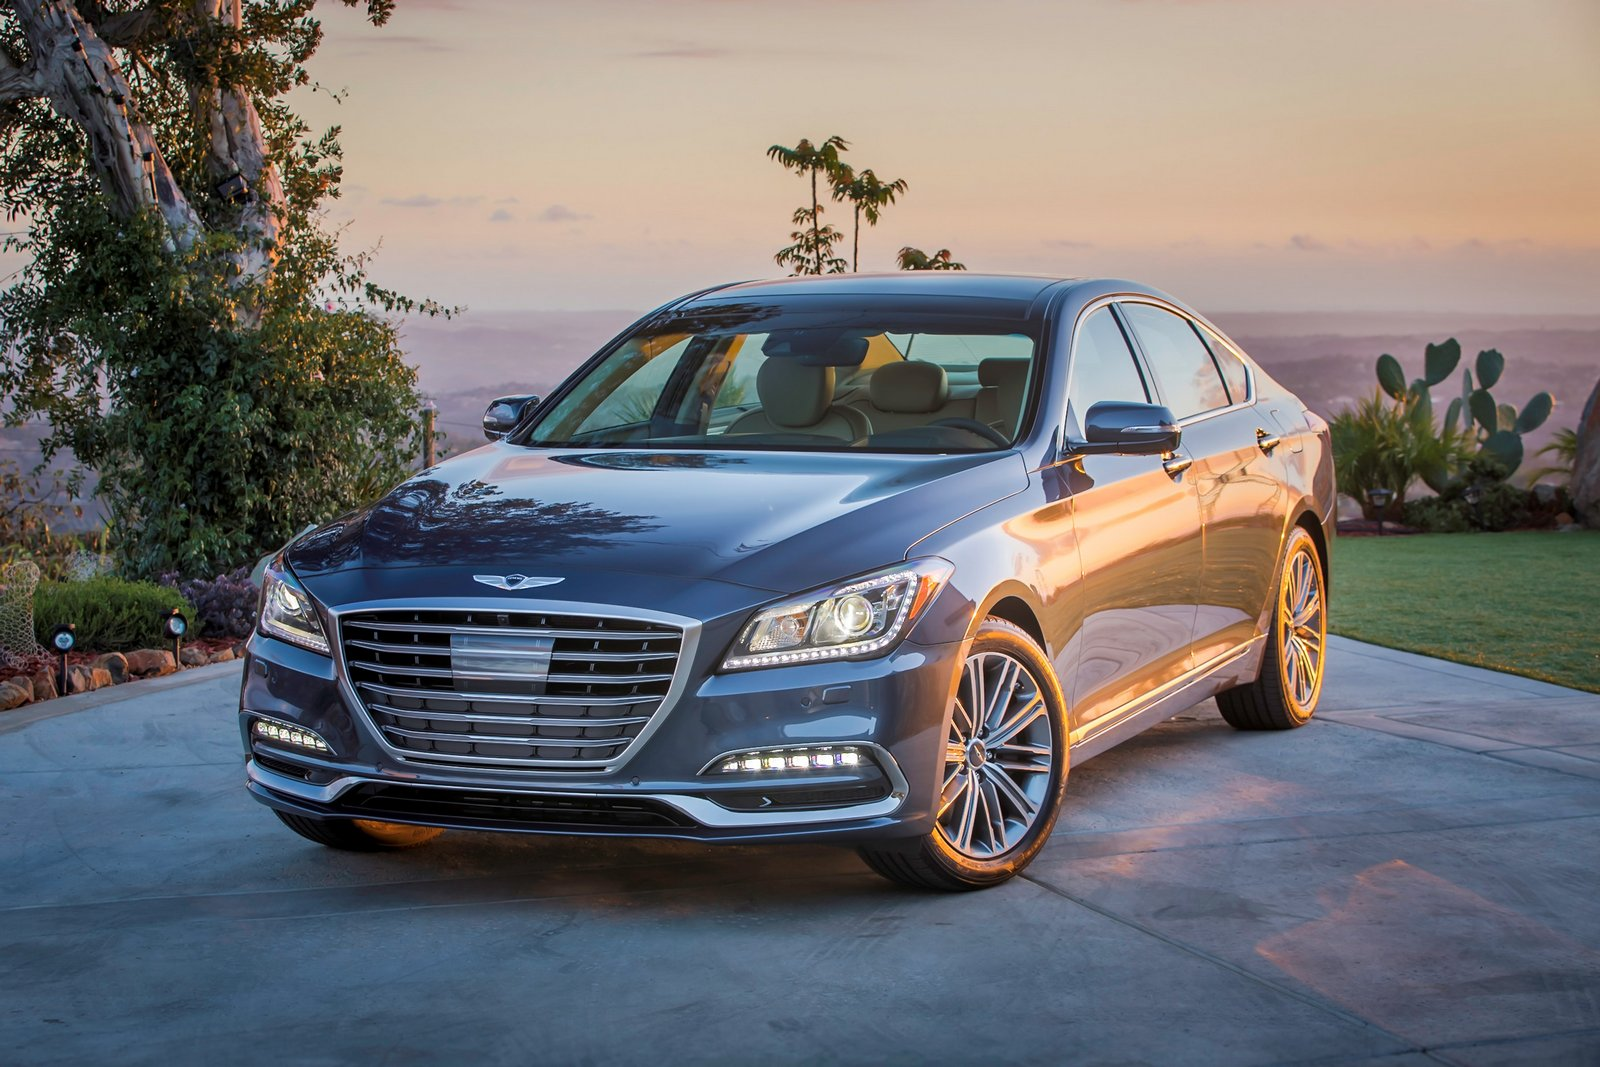 2018 Genesis G80 Sport Priced From $55,250  Carscoops